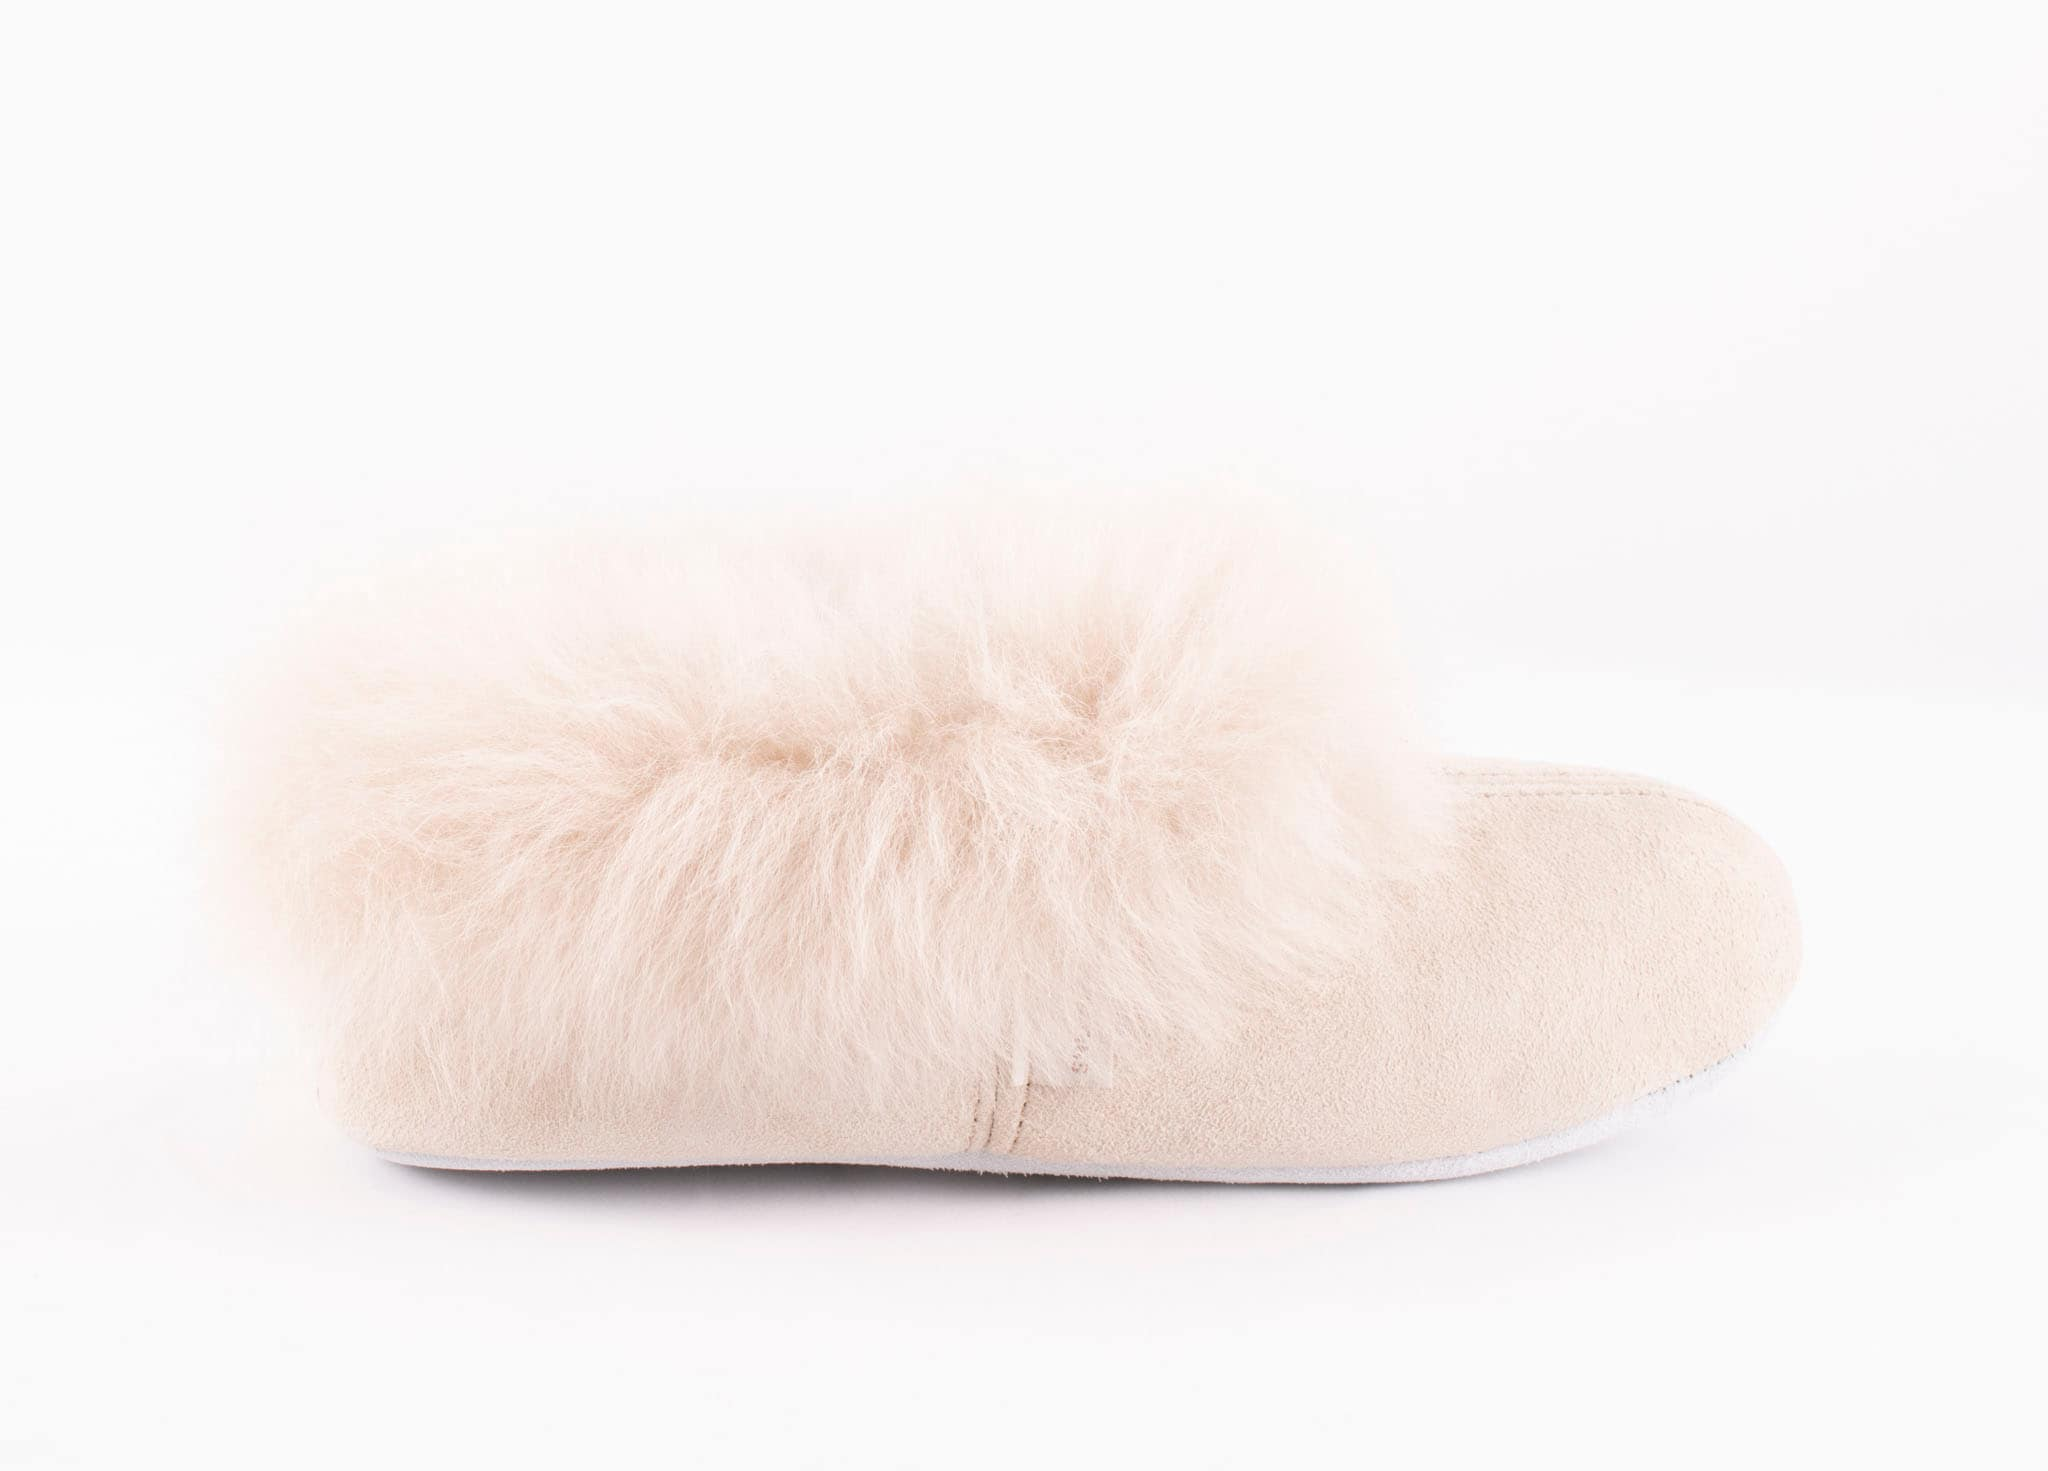 Annelie sheepskin slipper